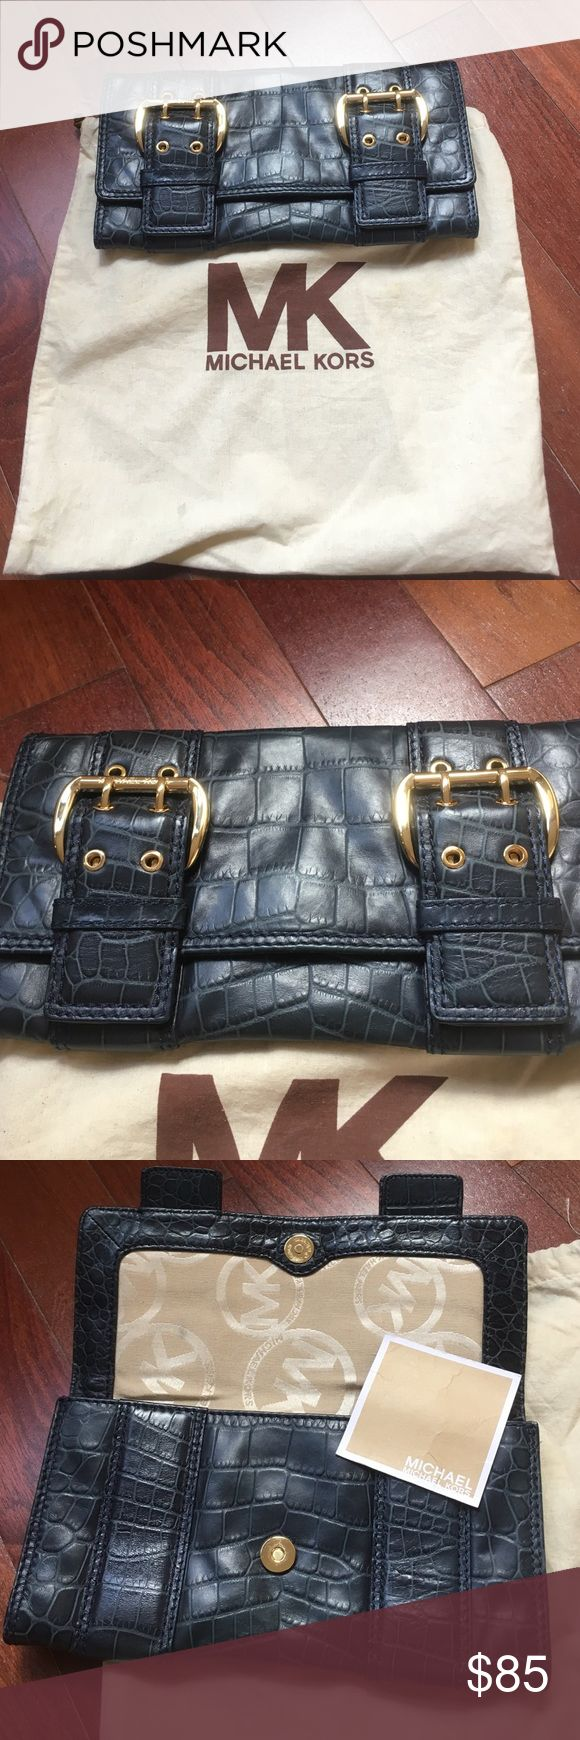 Michael kors navy clutch with gold buckle Navy is the new black. Practically new classic and elegant clutch. Can wear with anything. Michael Kors Bags Clutches & Wristlets